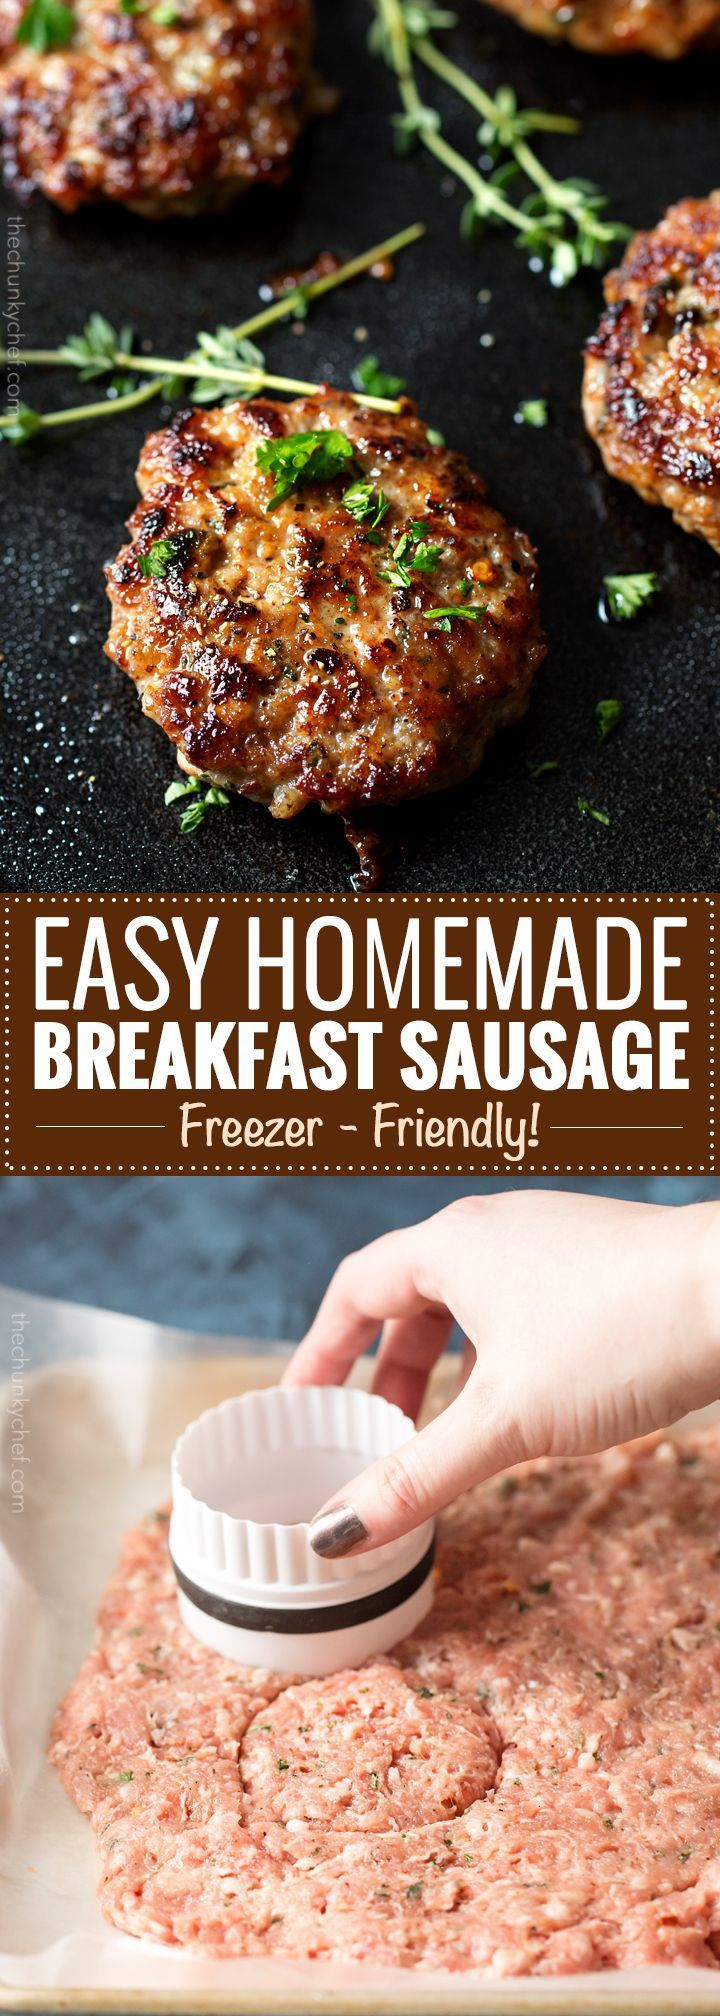 Homemade Maple Breakfast Sausage | These breakfast sausage patties are made with a combo of ground turkey and pork, savory herbs, and sweet maple syrup. The mouthwatering combo gives way to a low calorie homemade version of your favorite breakfast food! | thechunkychef.com